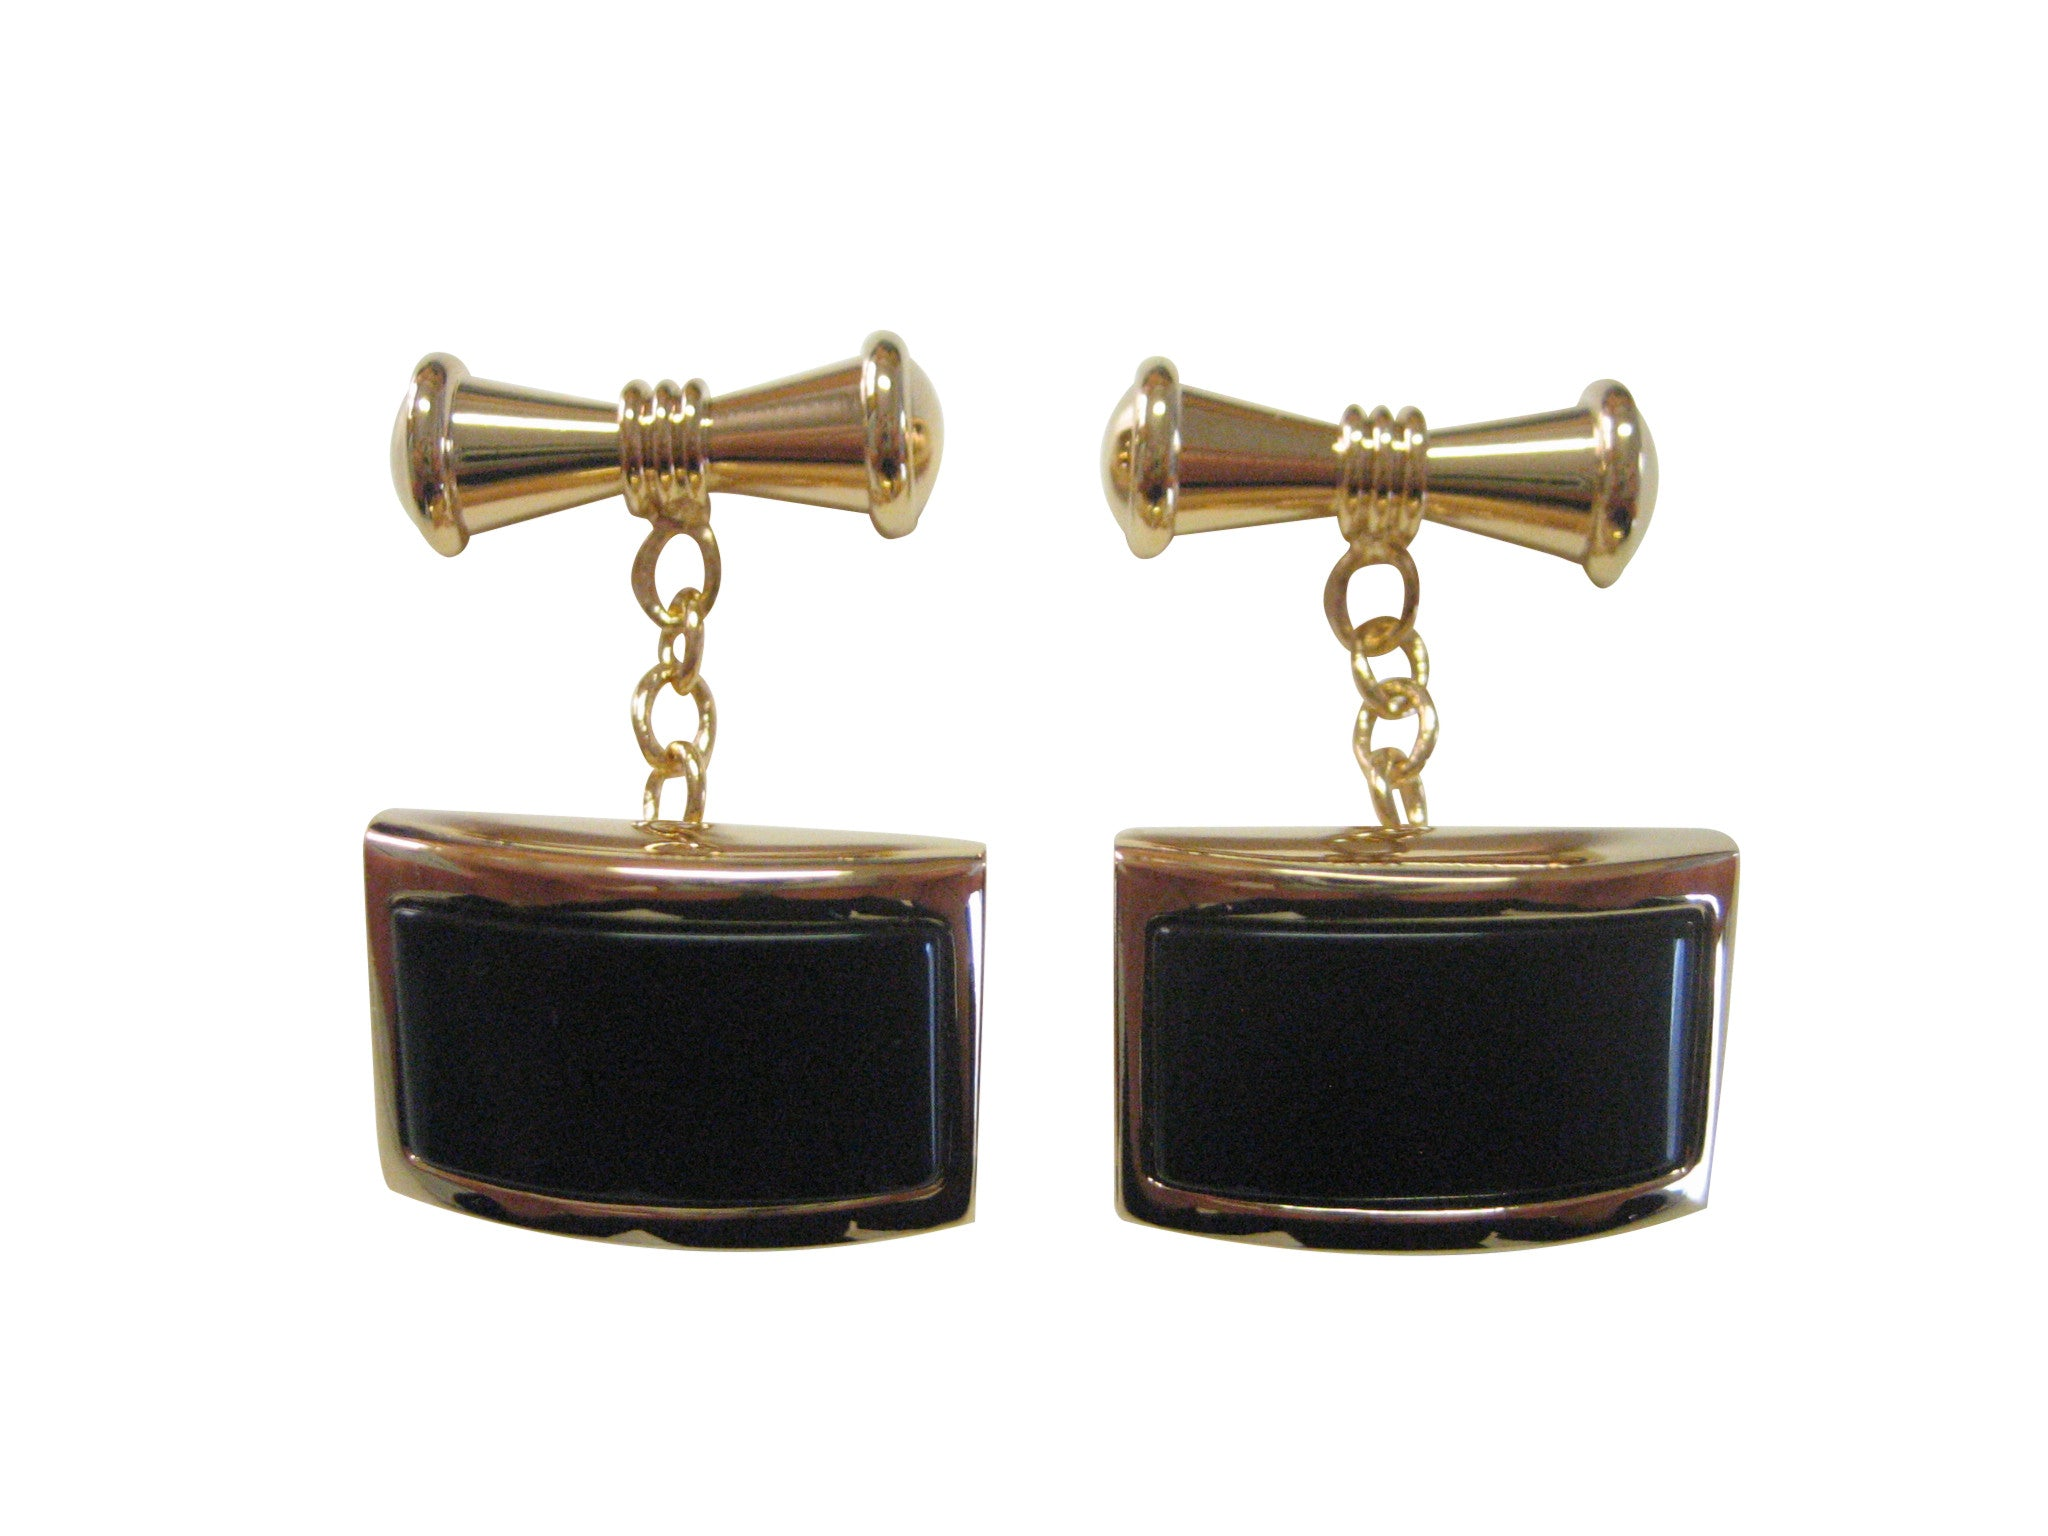 Curved Gold and Black Stylish Cufflinks